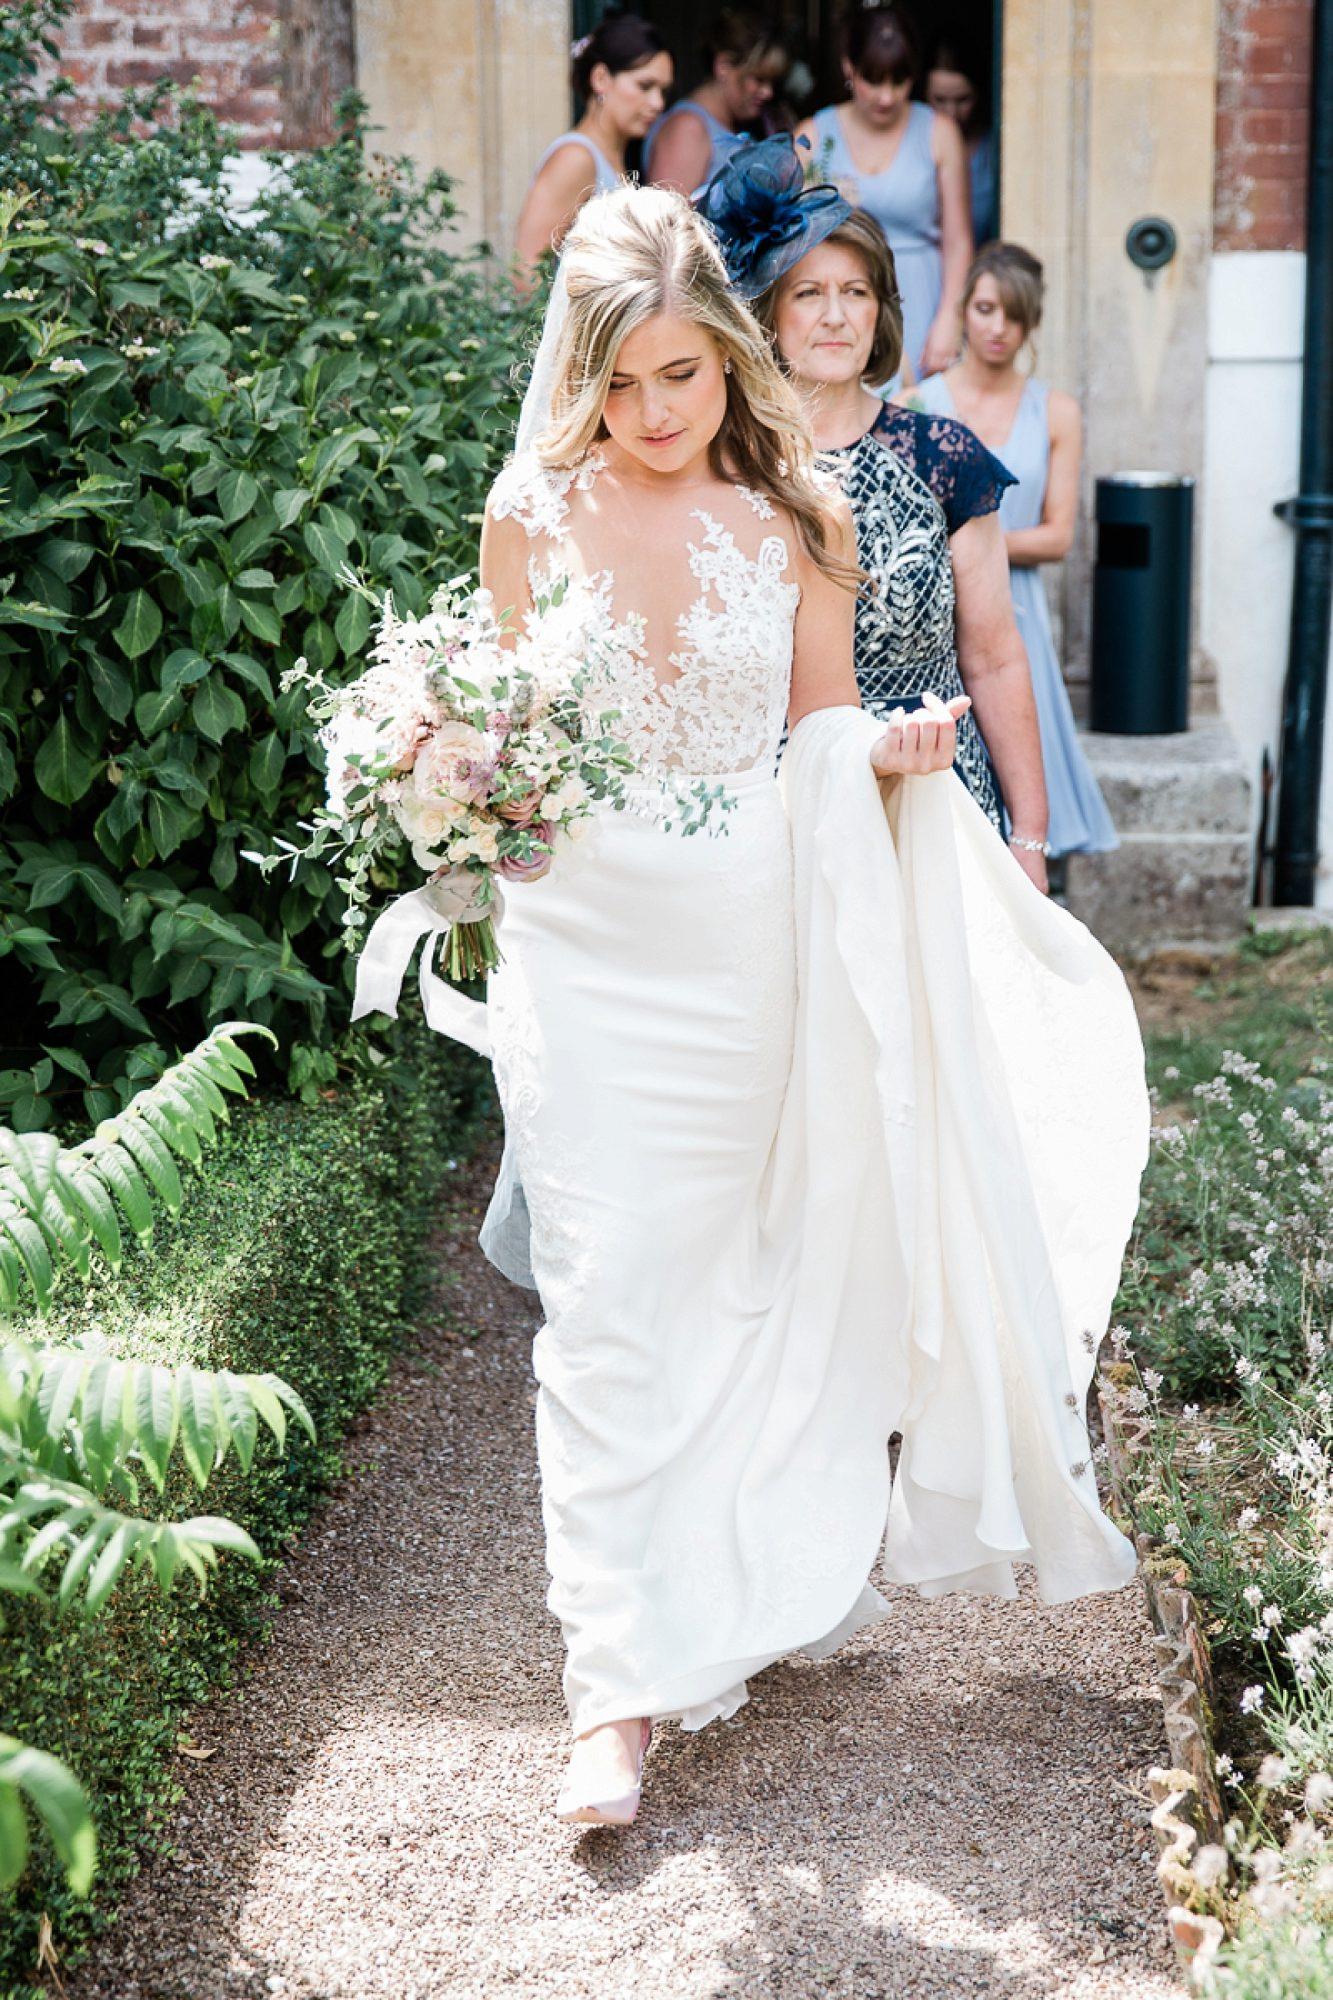 Bride holds dress over arm as she walks the gardens at Pynes house before her wedding ceremony